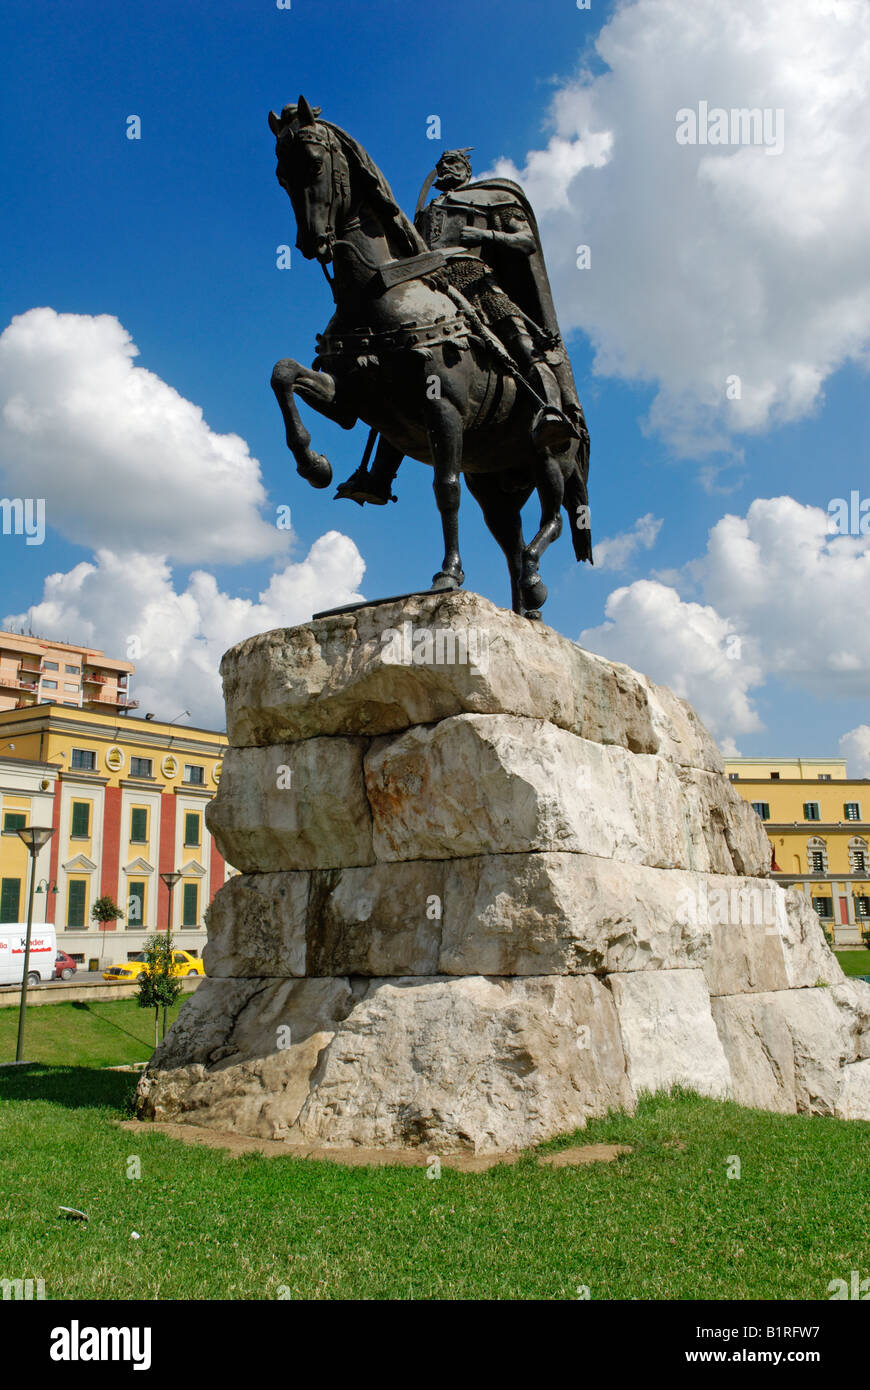 Skanderbeg monument in Skanderbeg Square in Tirana, Albania, Europe - Stock Image